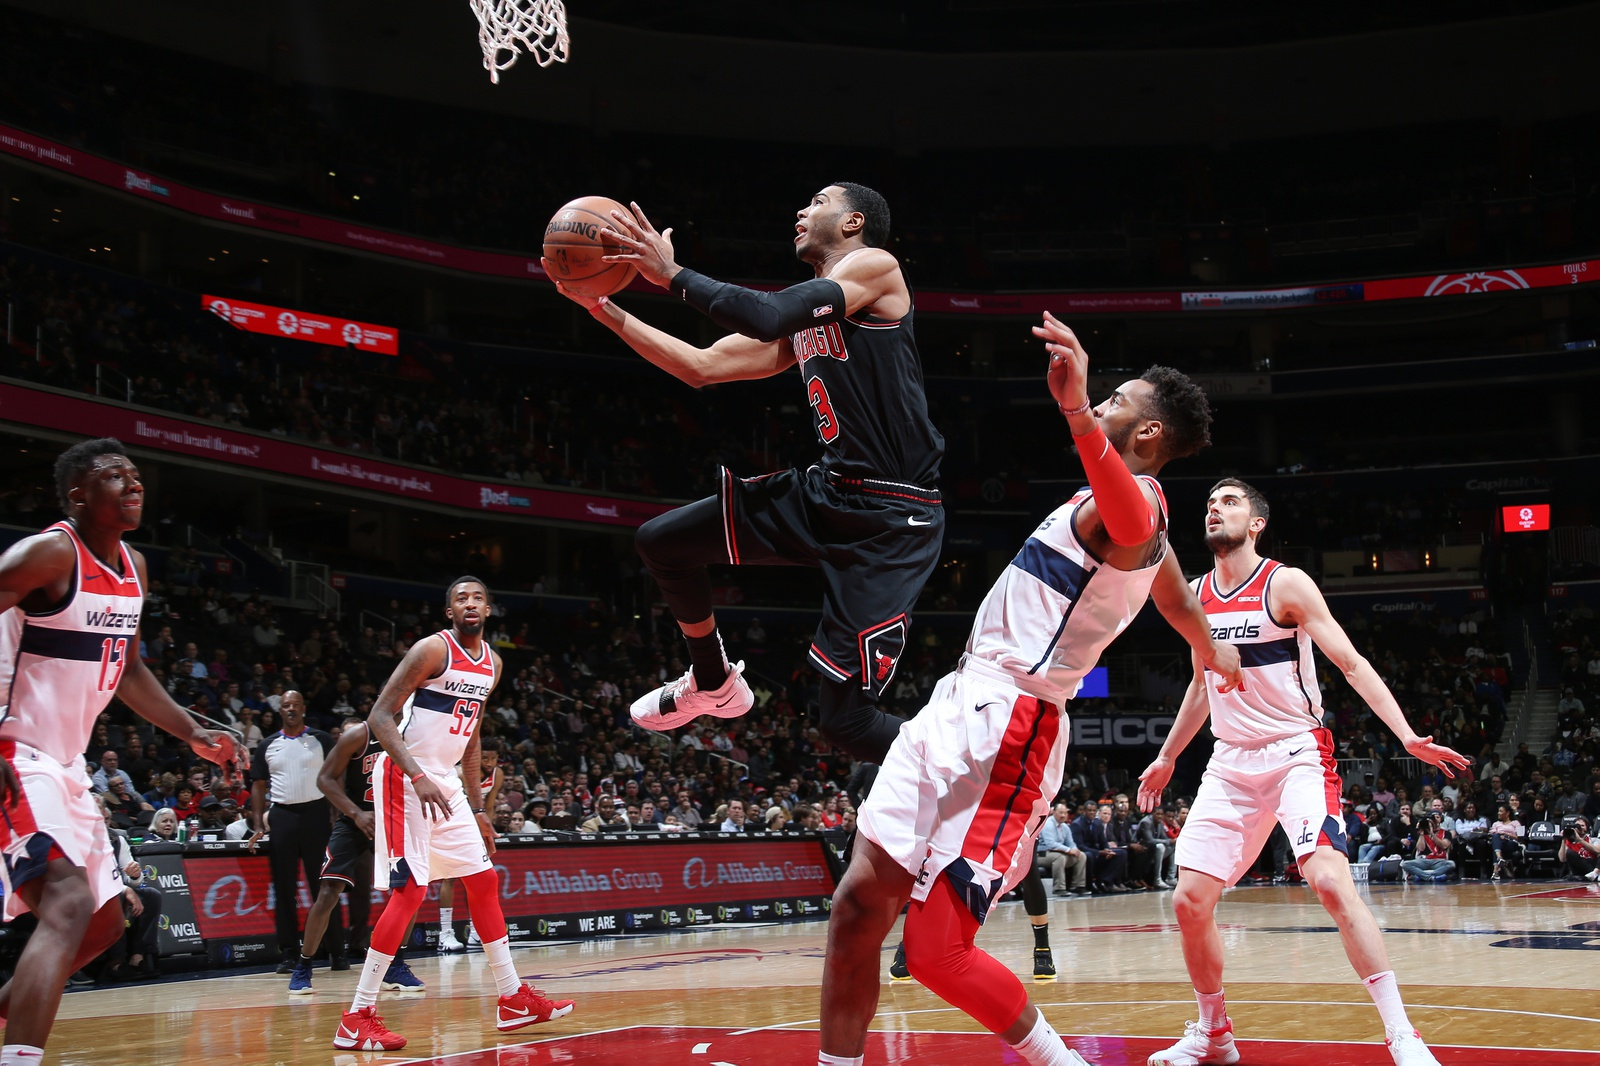 Shaquille Harrison #3 of the Chicago Bulls shoots the ball against the Washington Wizards on April 3, 2019 at Capital One Arena in Washington, DC.